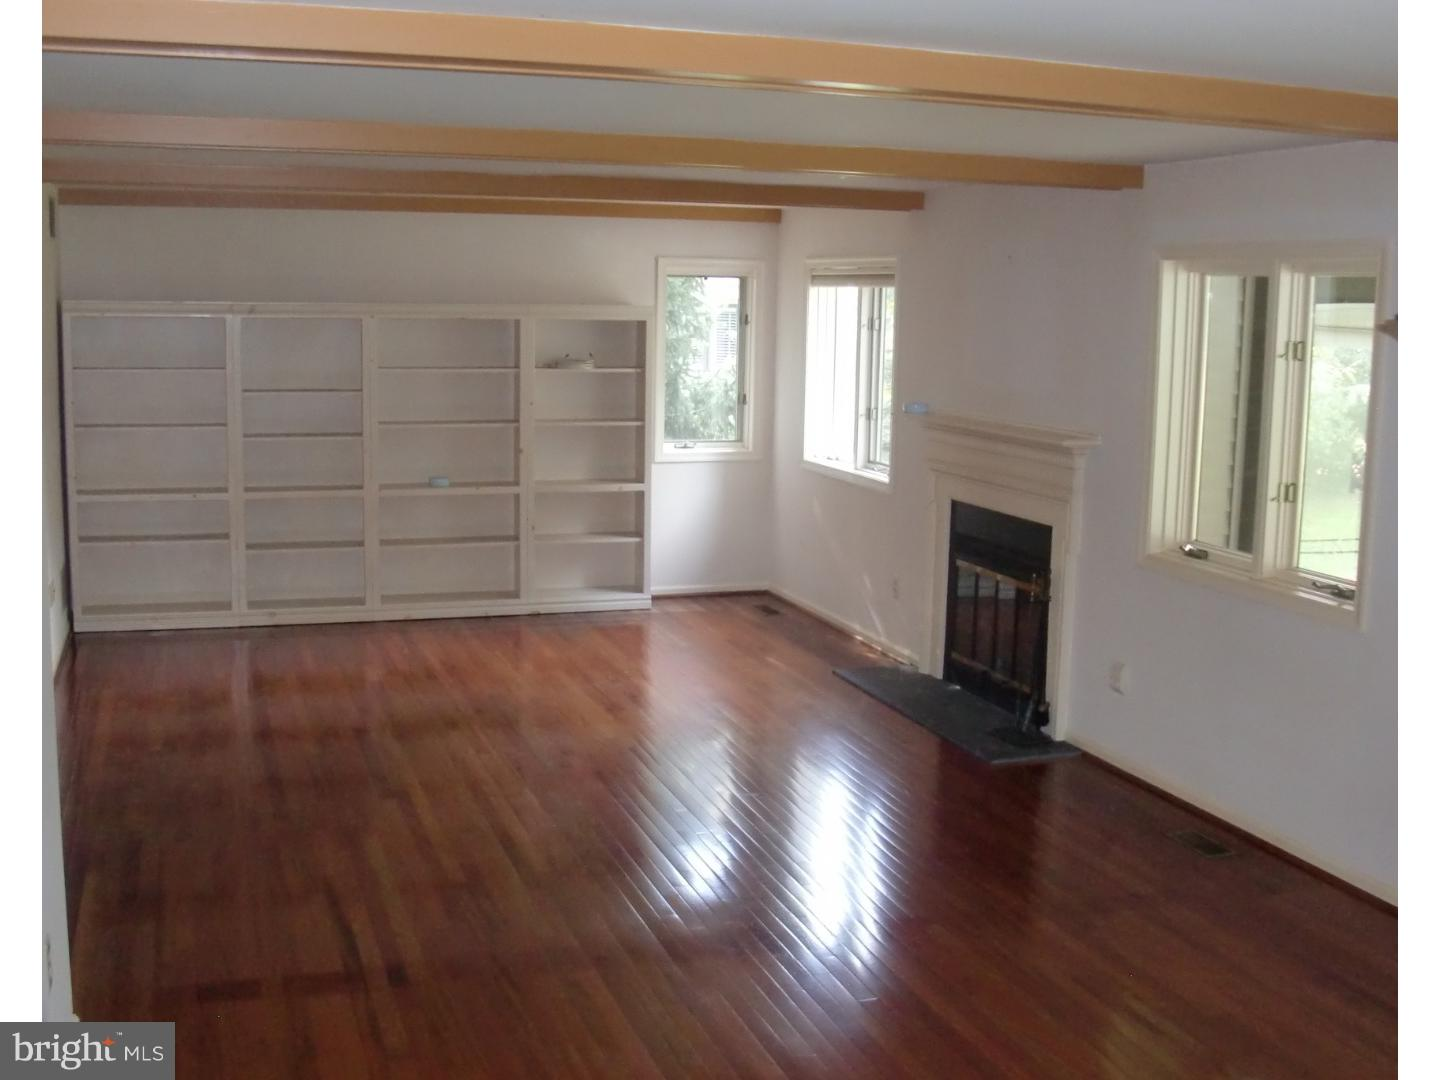 572 Franklin Way West Chester , PA 19380